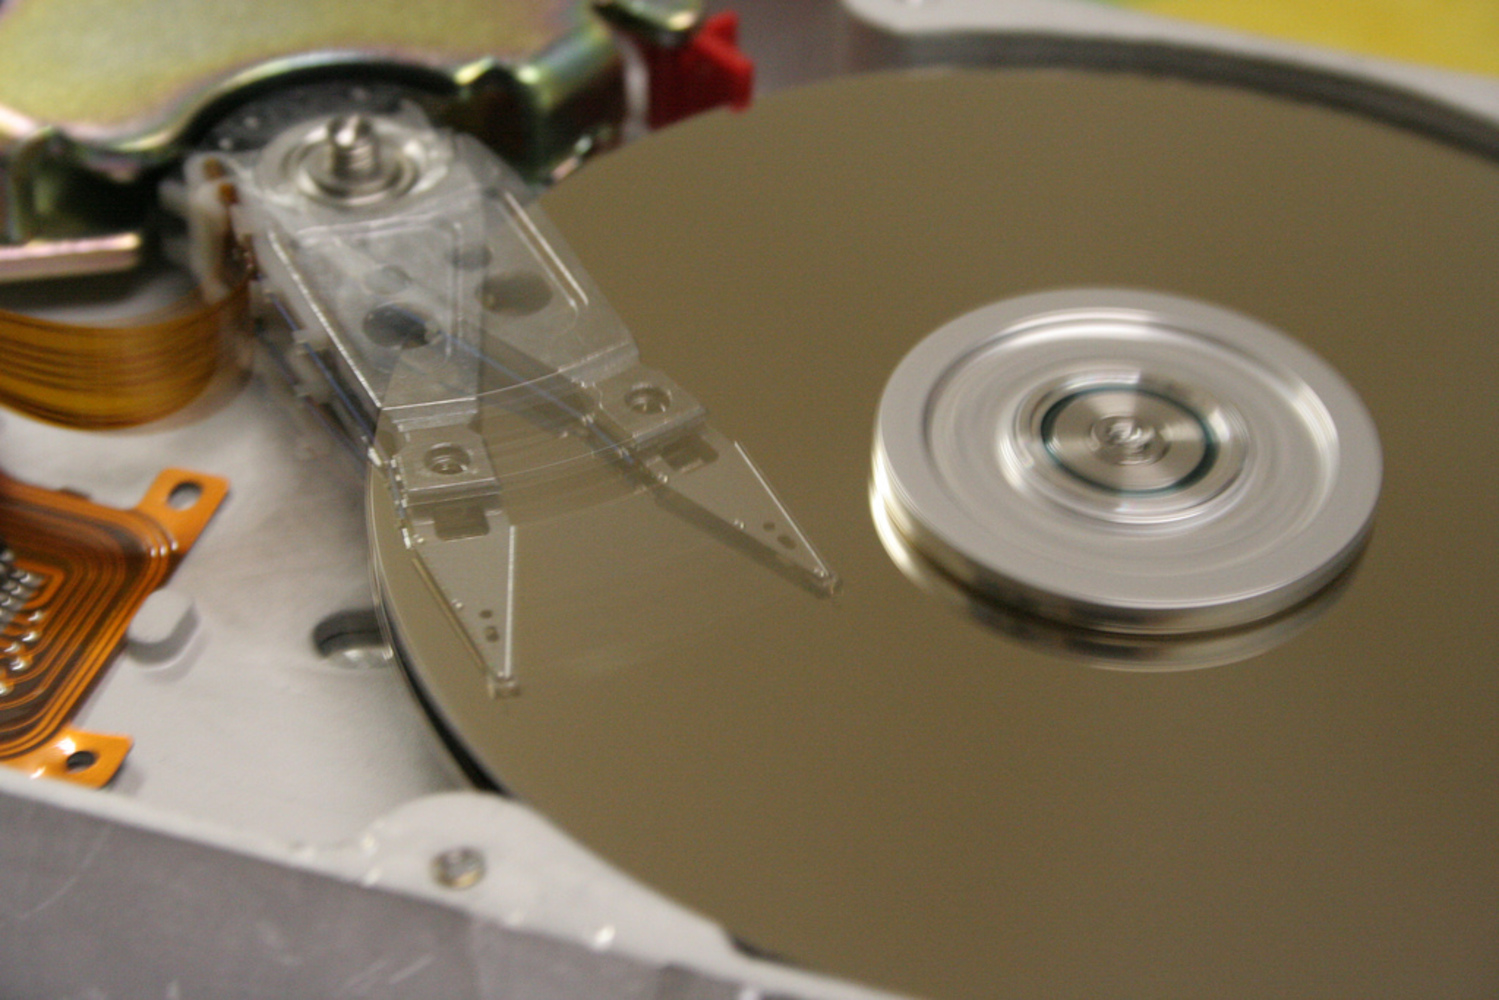 Hard disk drives are common storage devices used with computers.